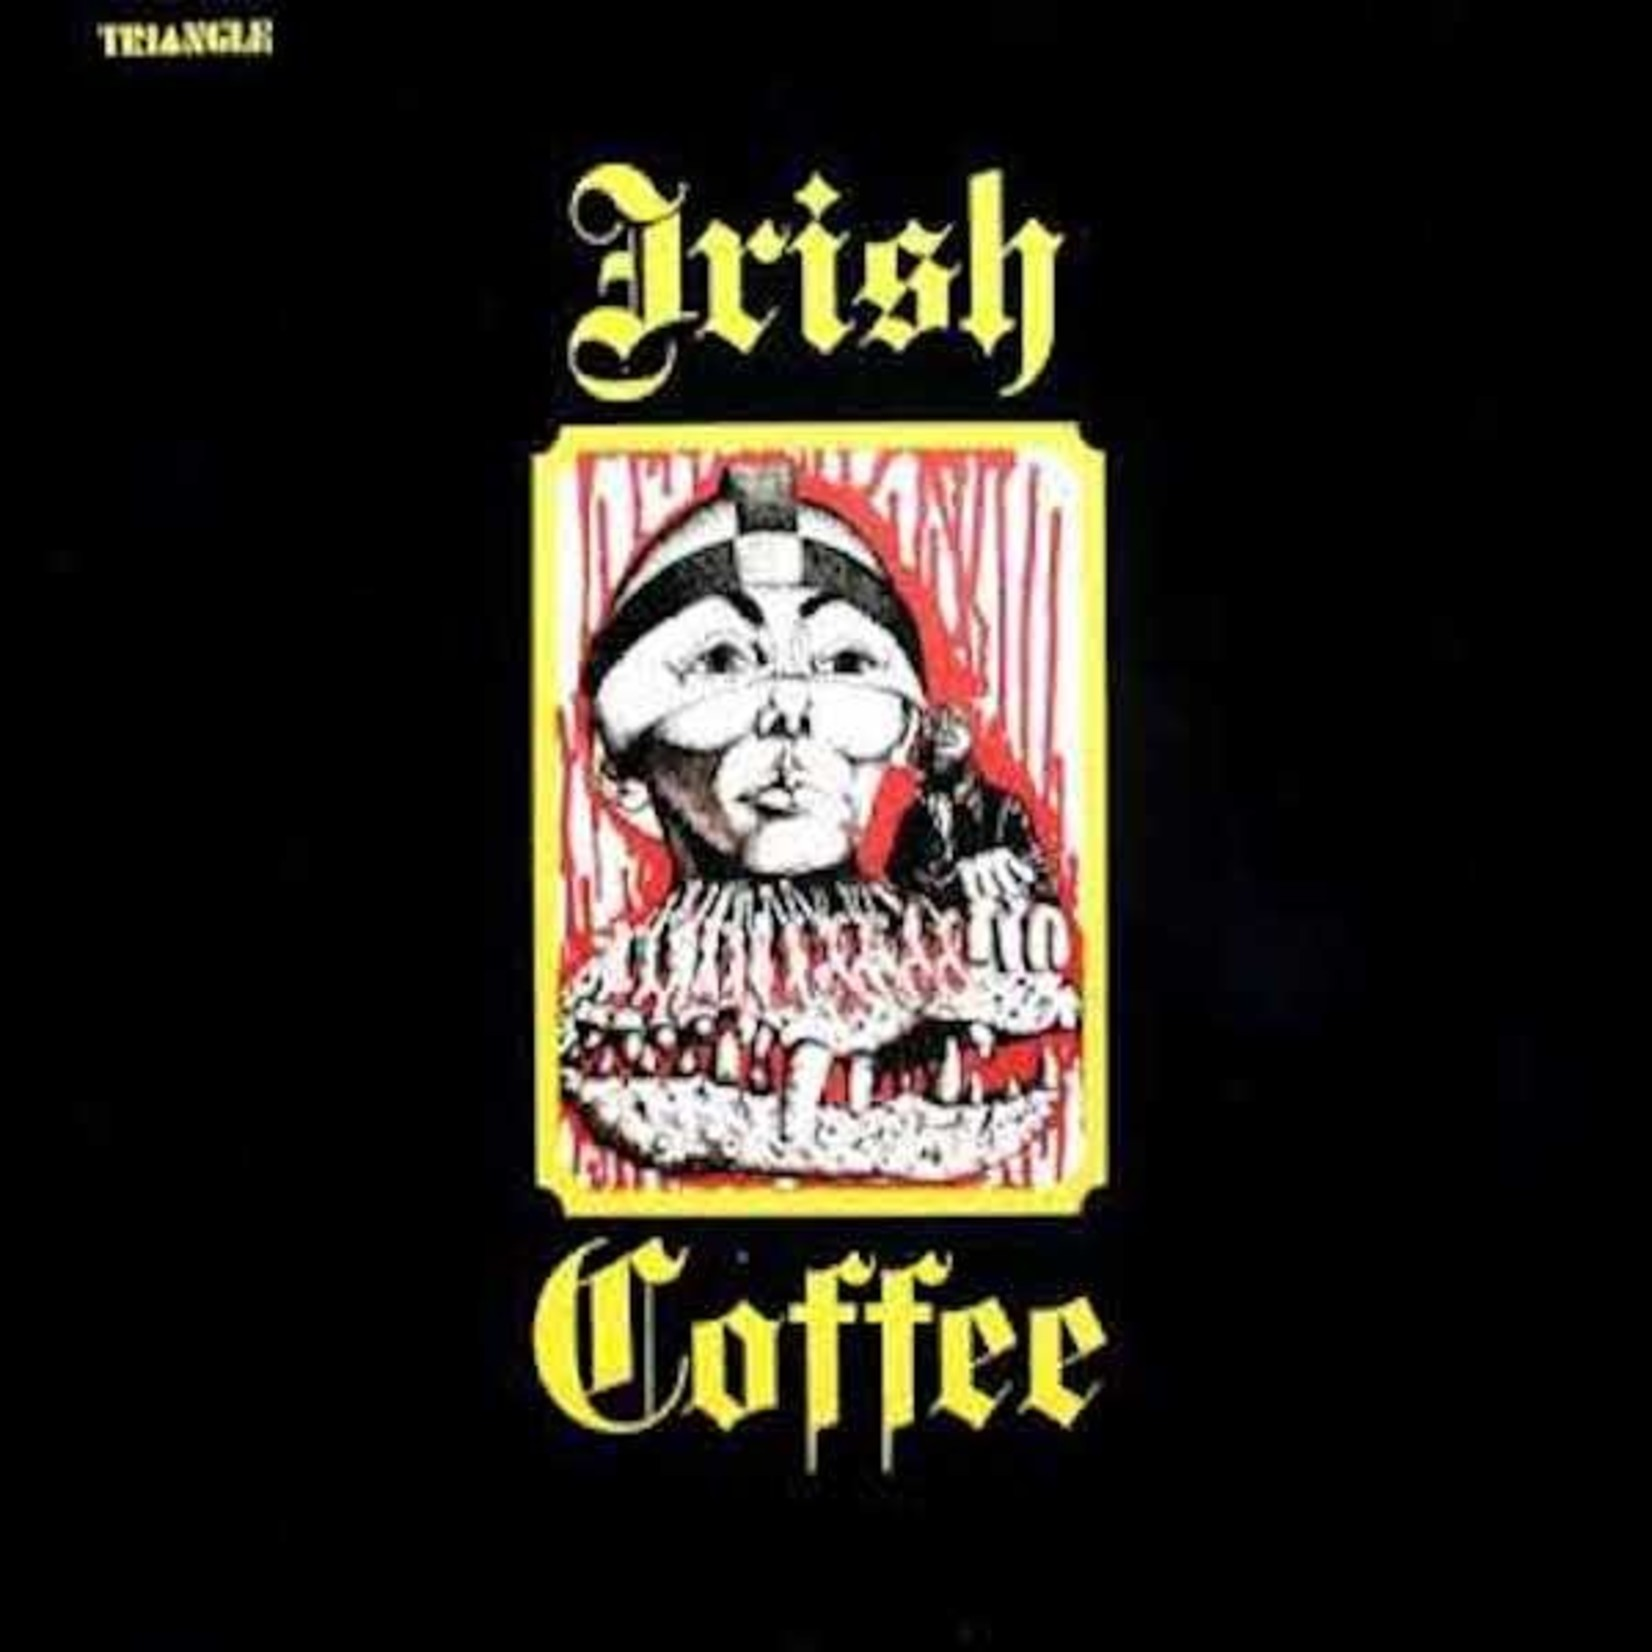 Vinyl Irish Coffee - S/T